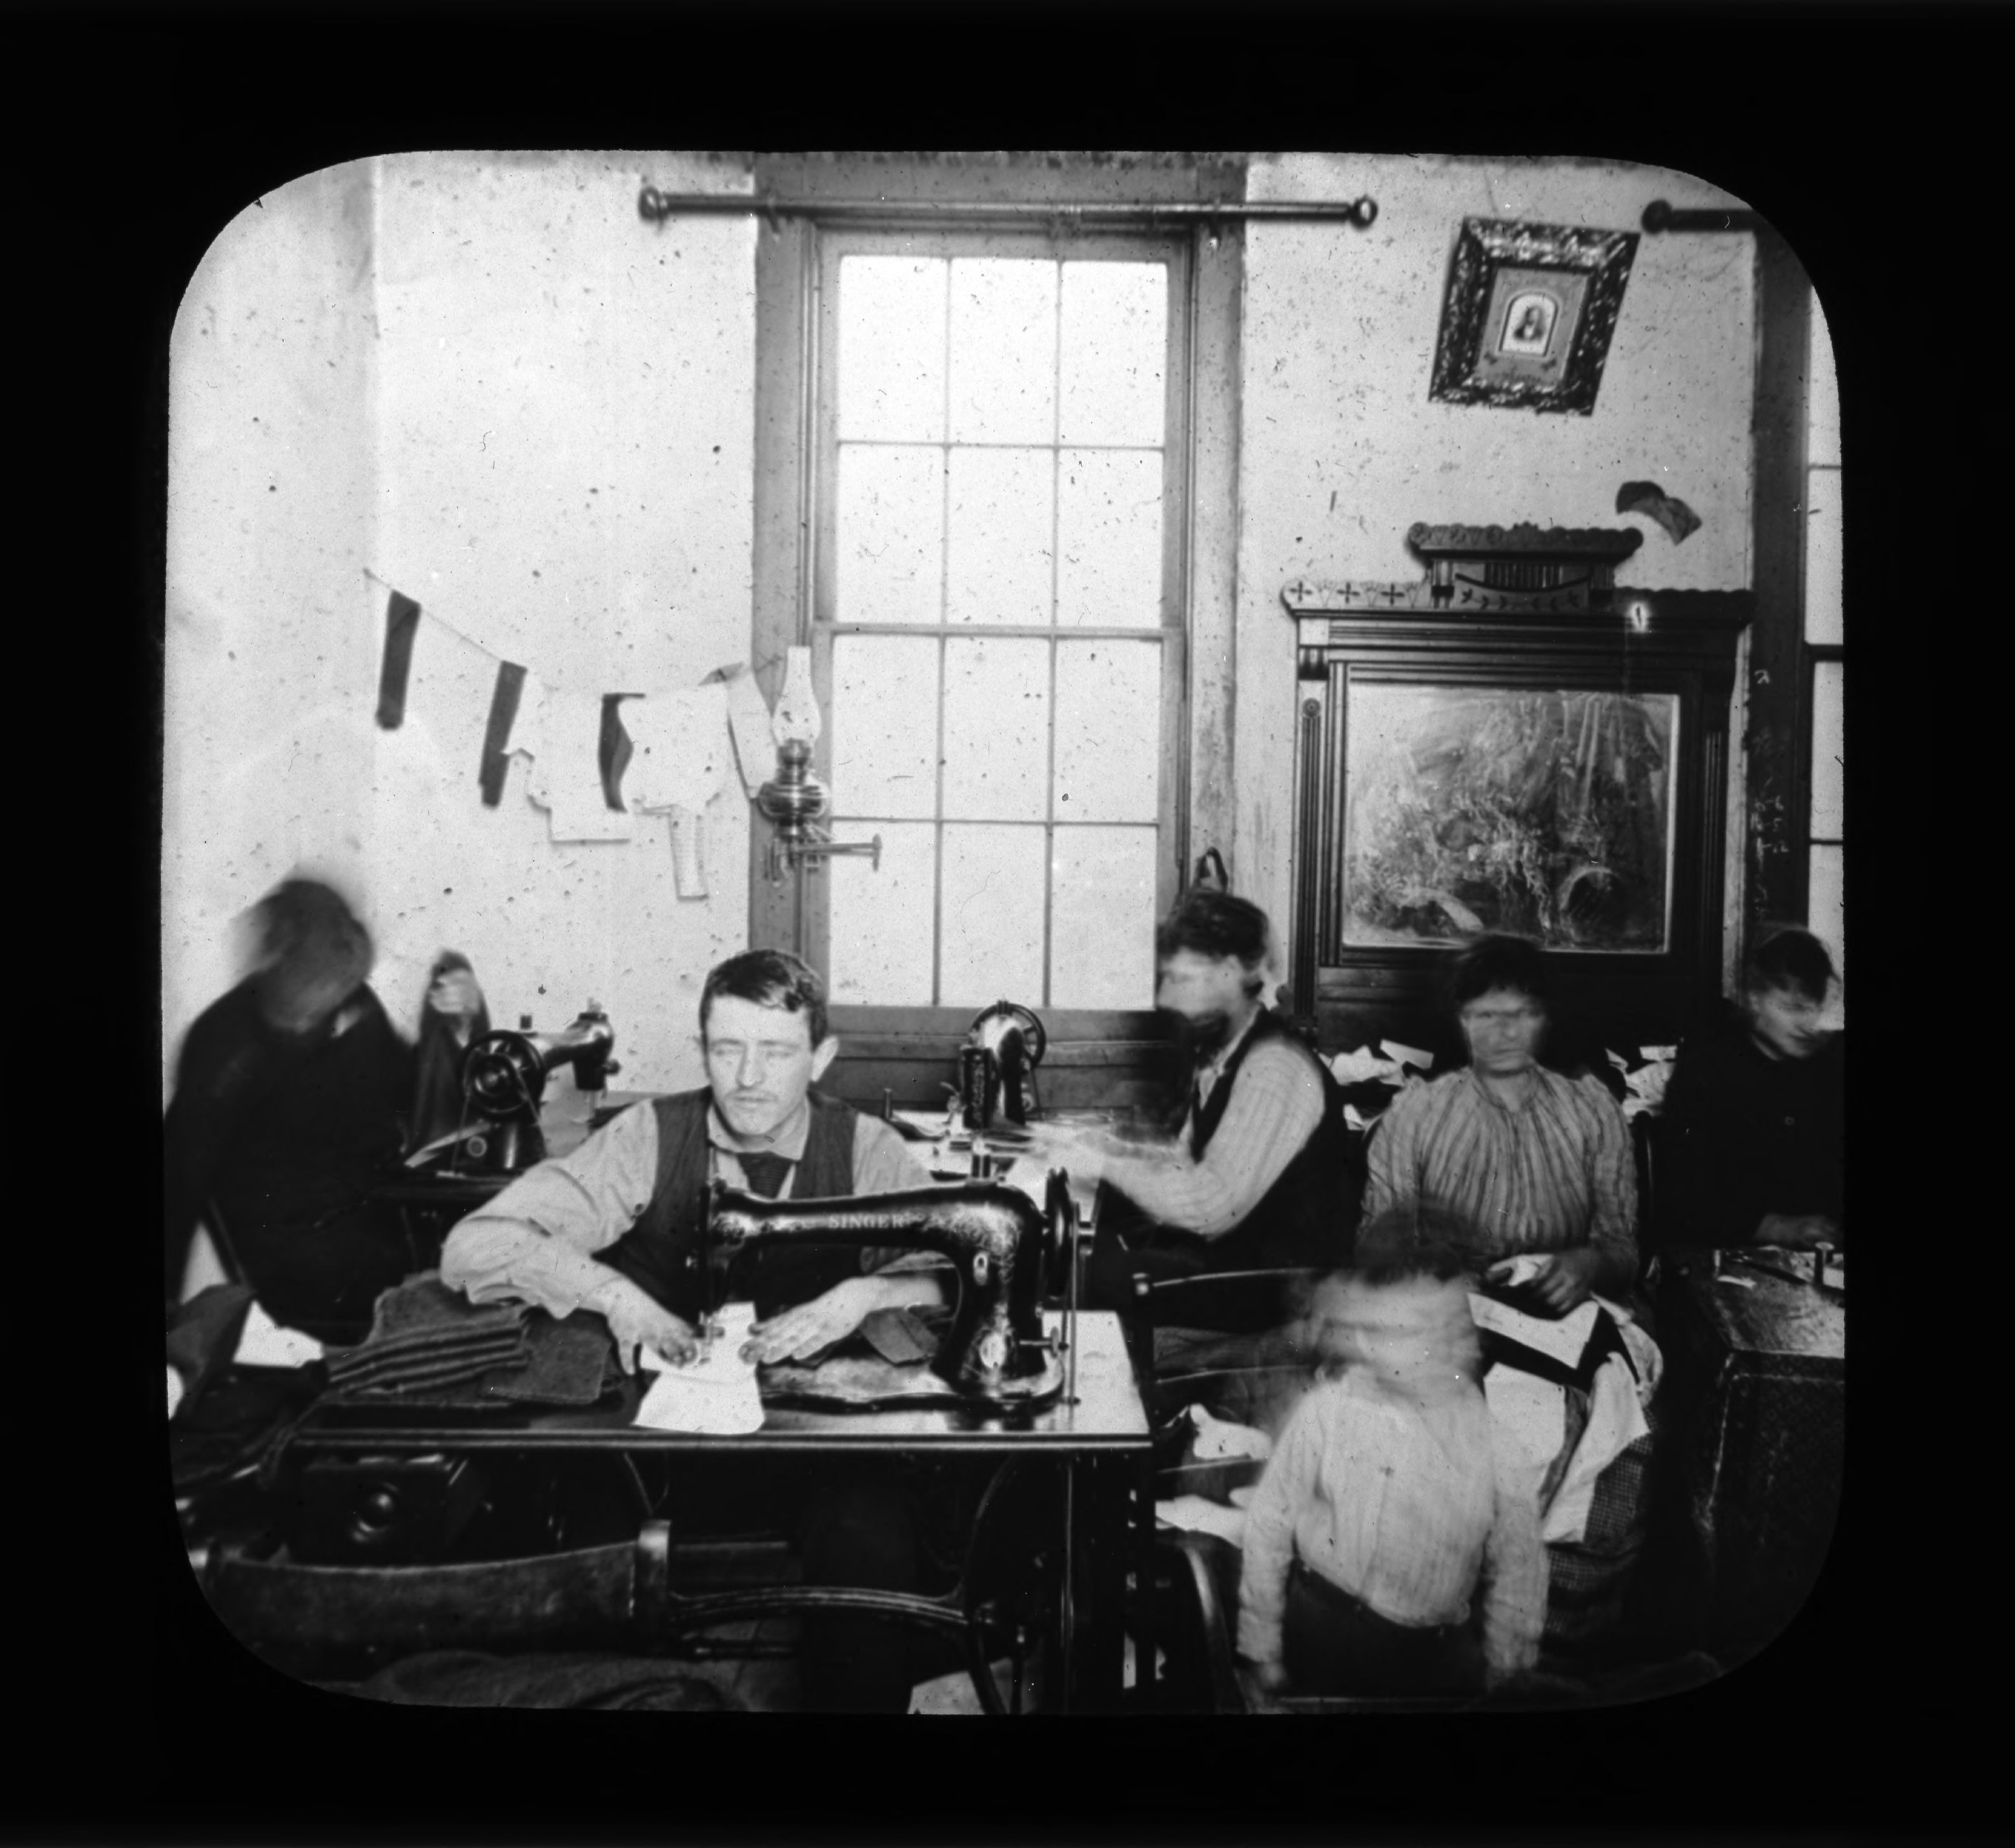 Room of workers 4. Photograph by Rubenstein. Source: UNITE HERE Archives, Kheel Center, Cornell University Date: Circa 1885